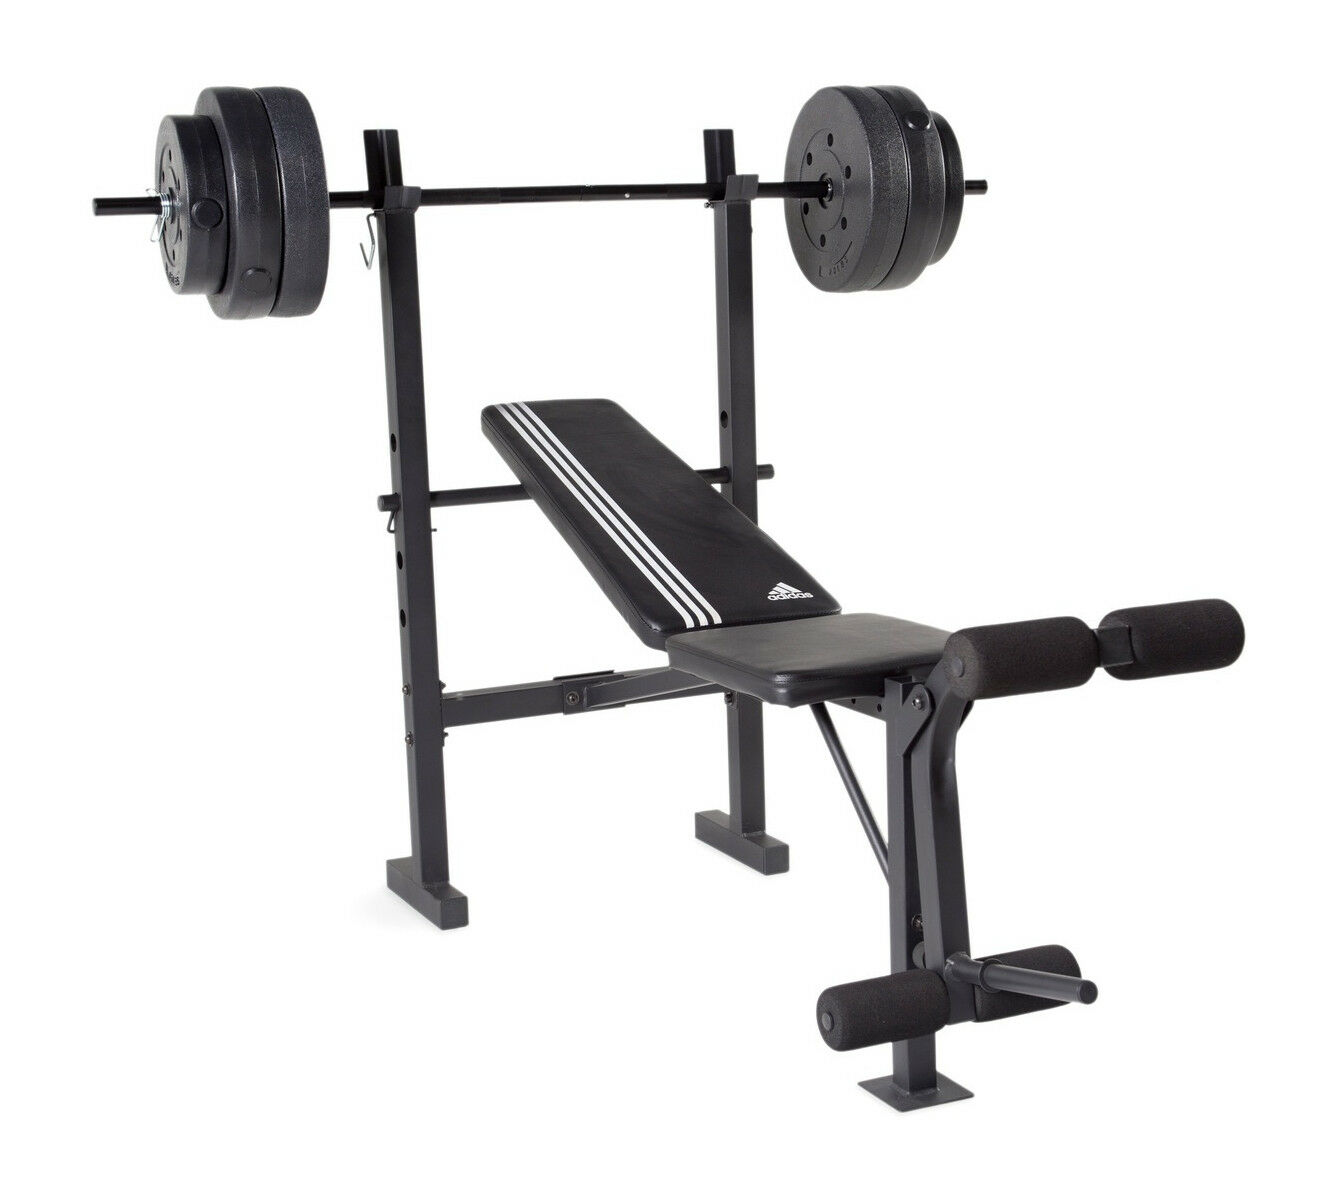 Marcy MCB379 Bench with 100 lbs Weight Set  has been sold  classic fashion